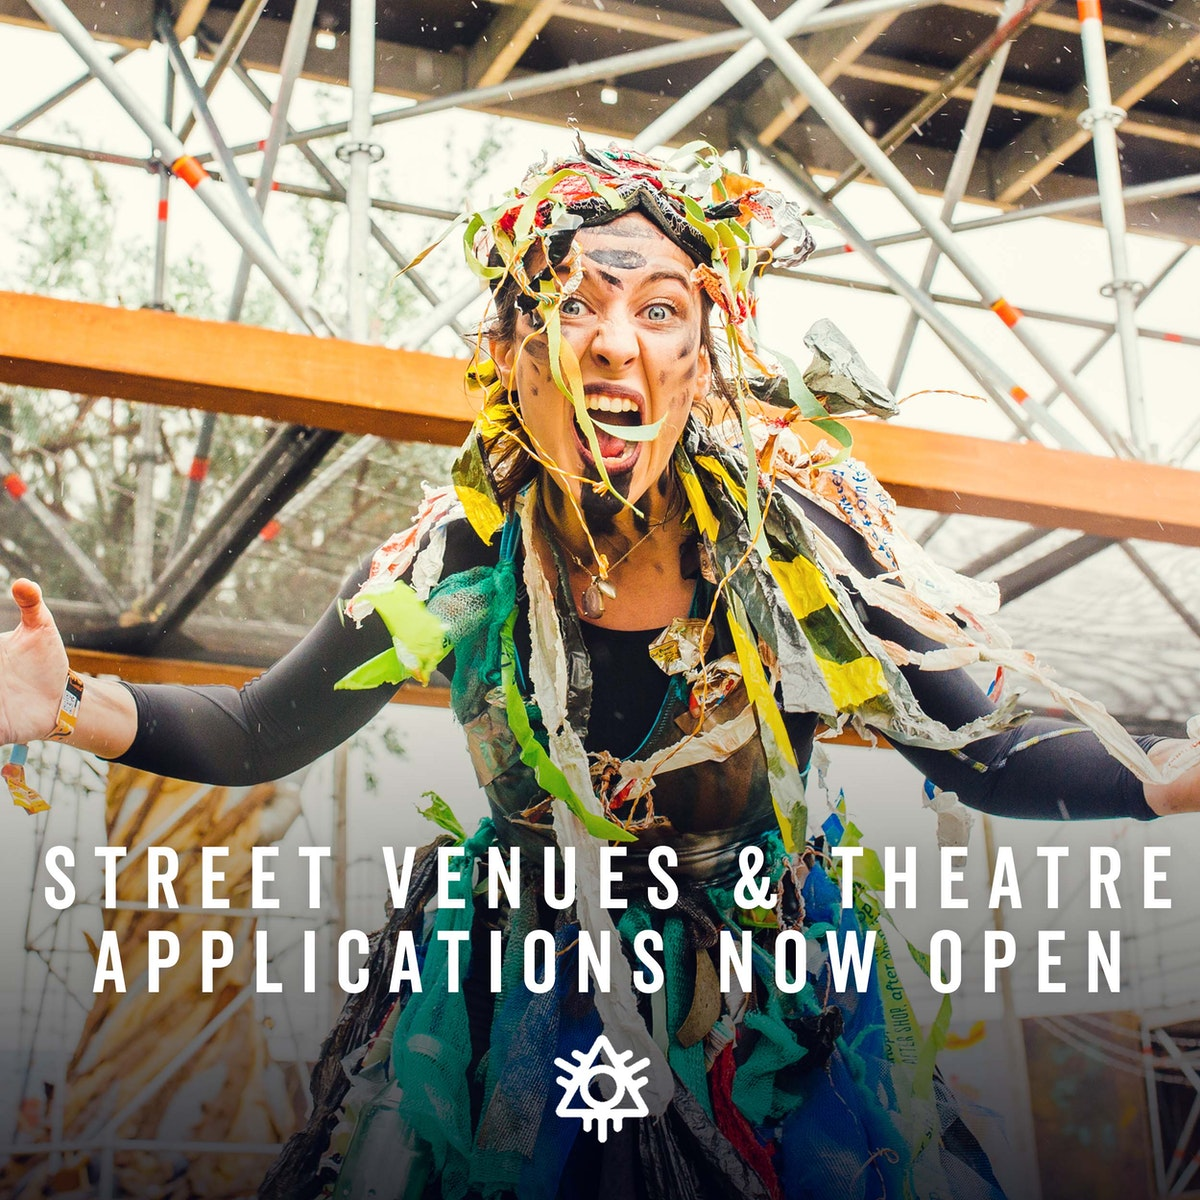 Street Venue Applications for Chapter 12 are now open! 🎭